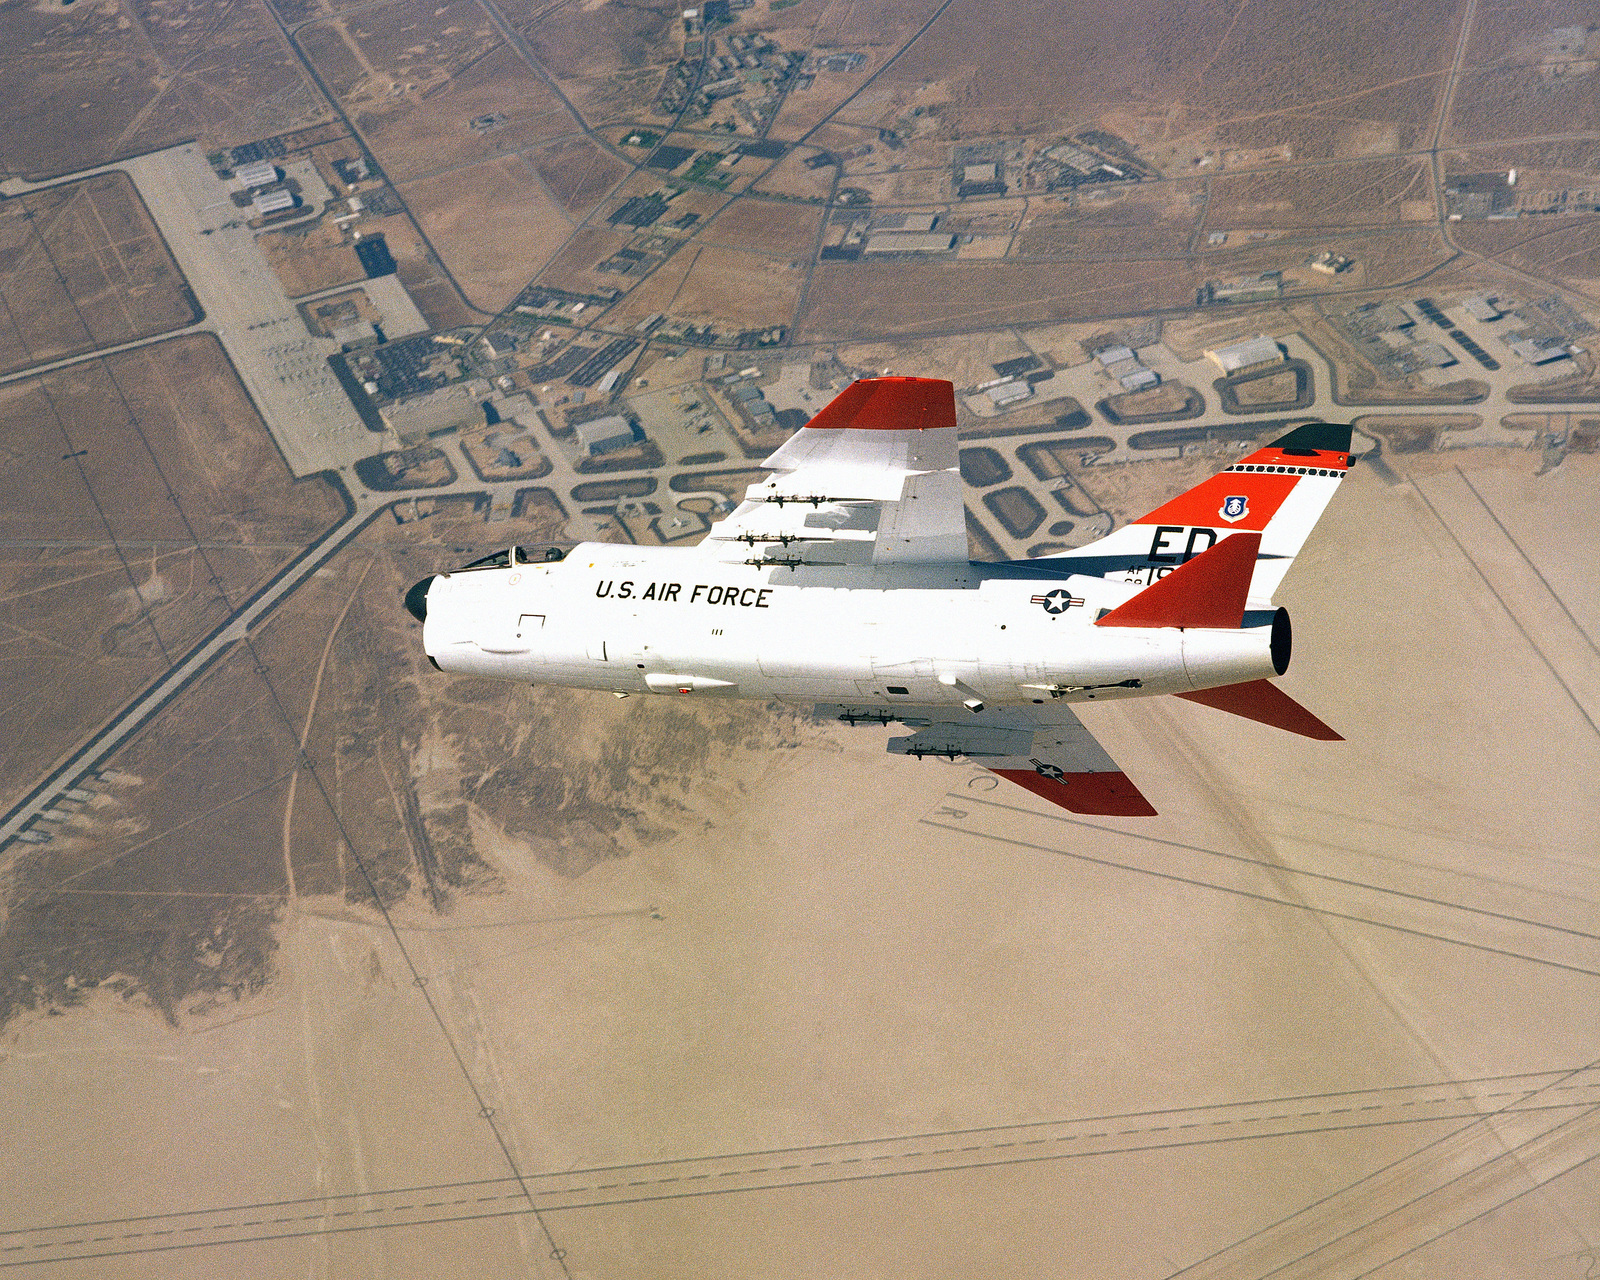 An air-to-air left side view of an A-7 Corsair II aircraft over Edwards Air Force Base